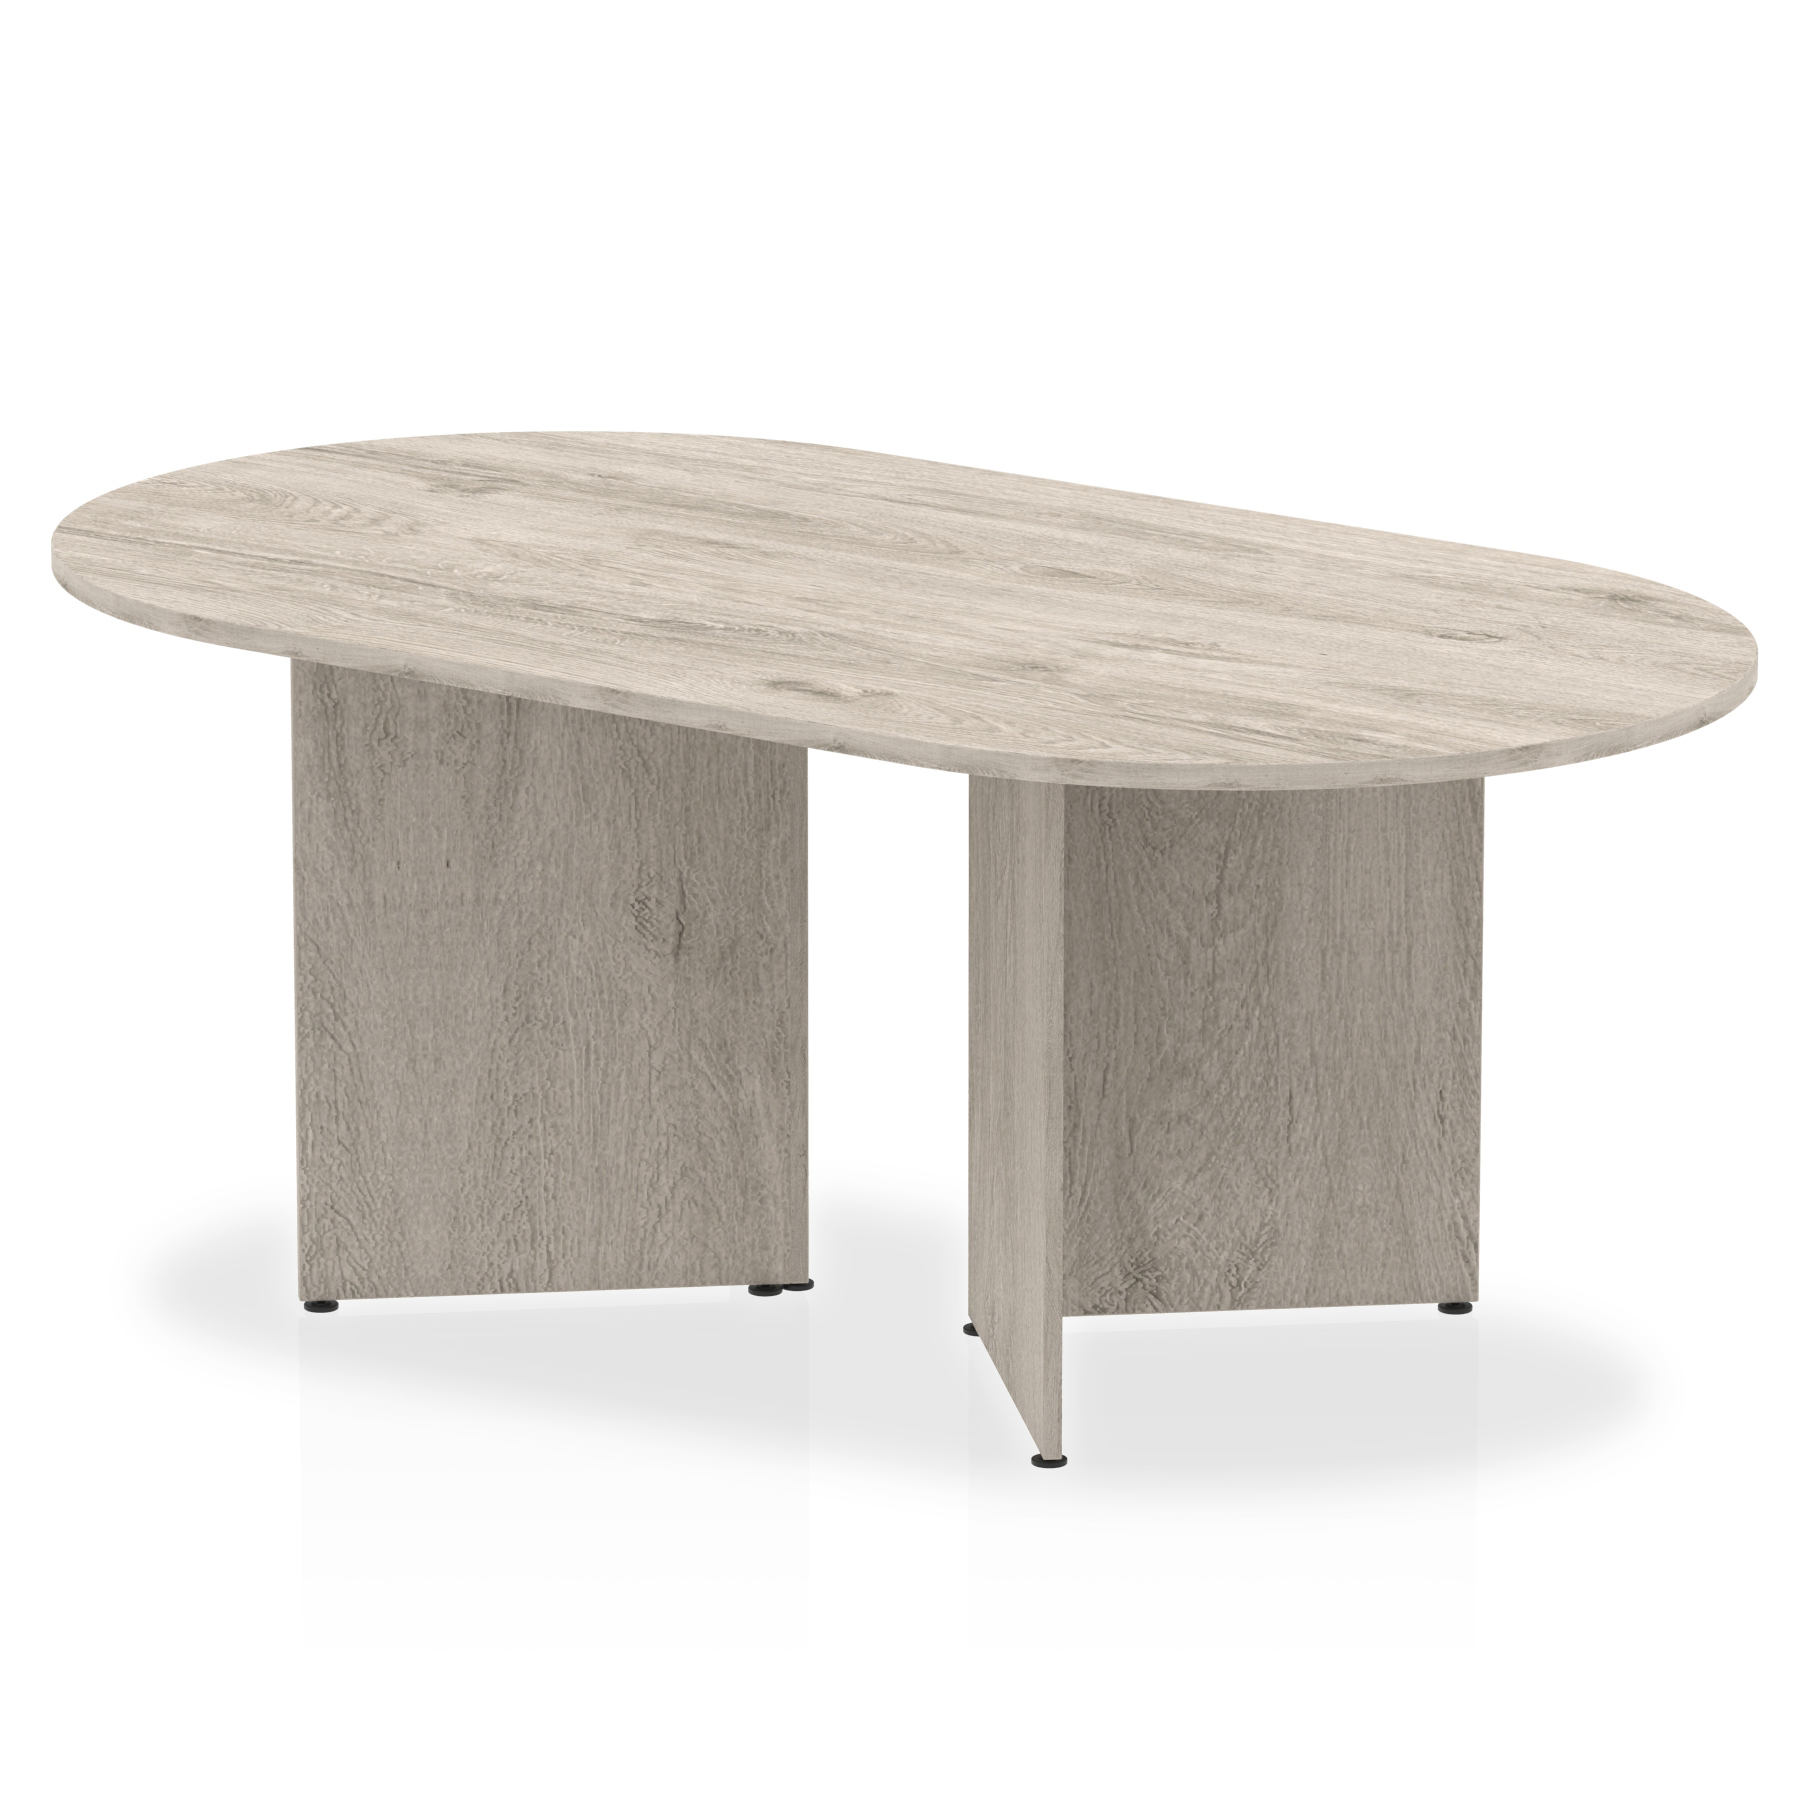 Tables Trexus Boardroom Table Arrowhead 1800x1200x730mm Grey Oak